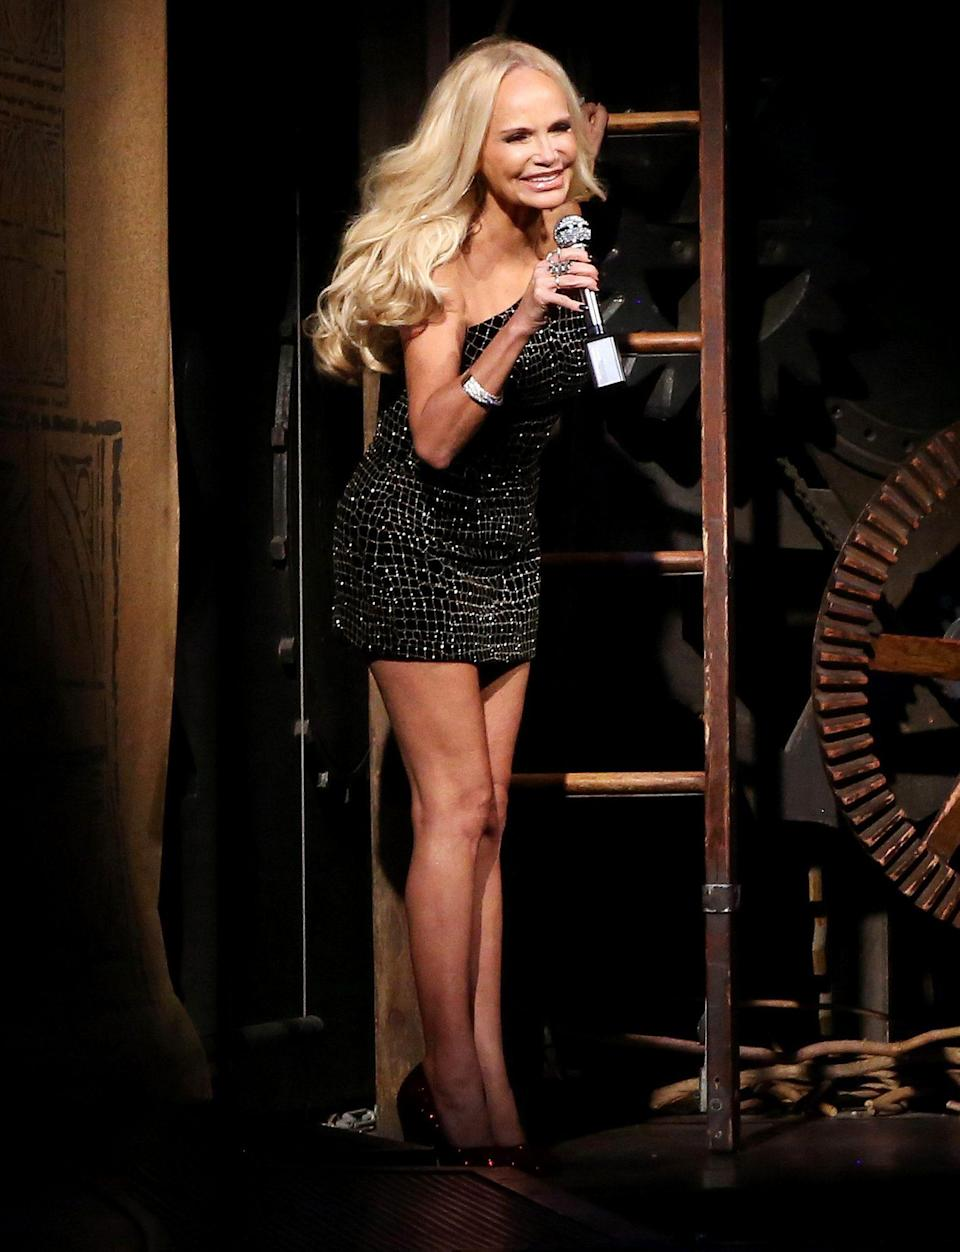 <p>There to help with the re-opening night of <em>Wicked </em>was original cast member, Kristin Chenoweth! Chenoweth played Glinda when the show first opened in 2003, scoring a Tony nomination for her work. </p>